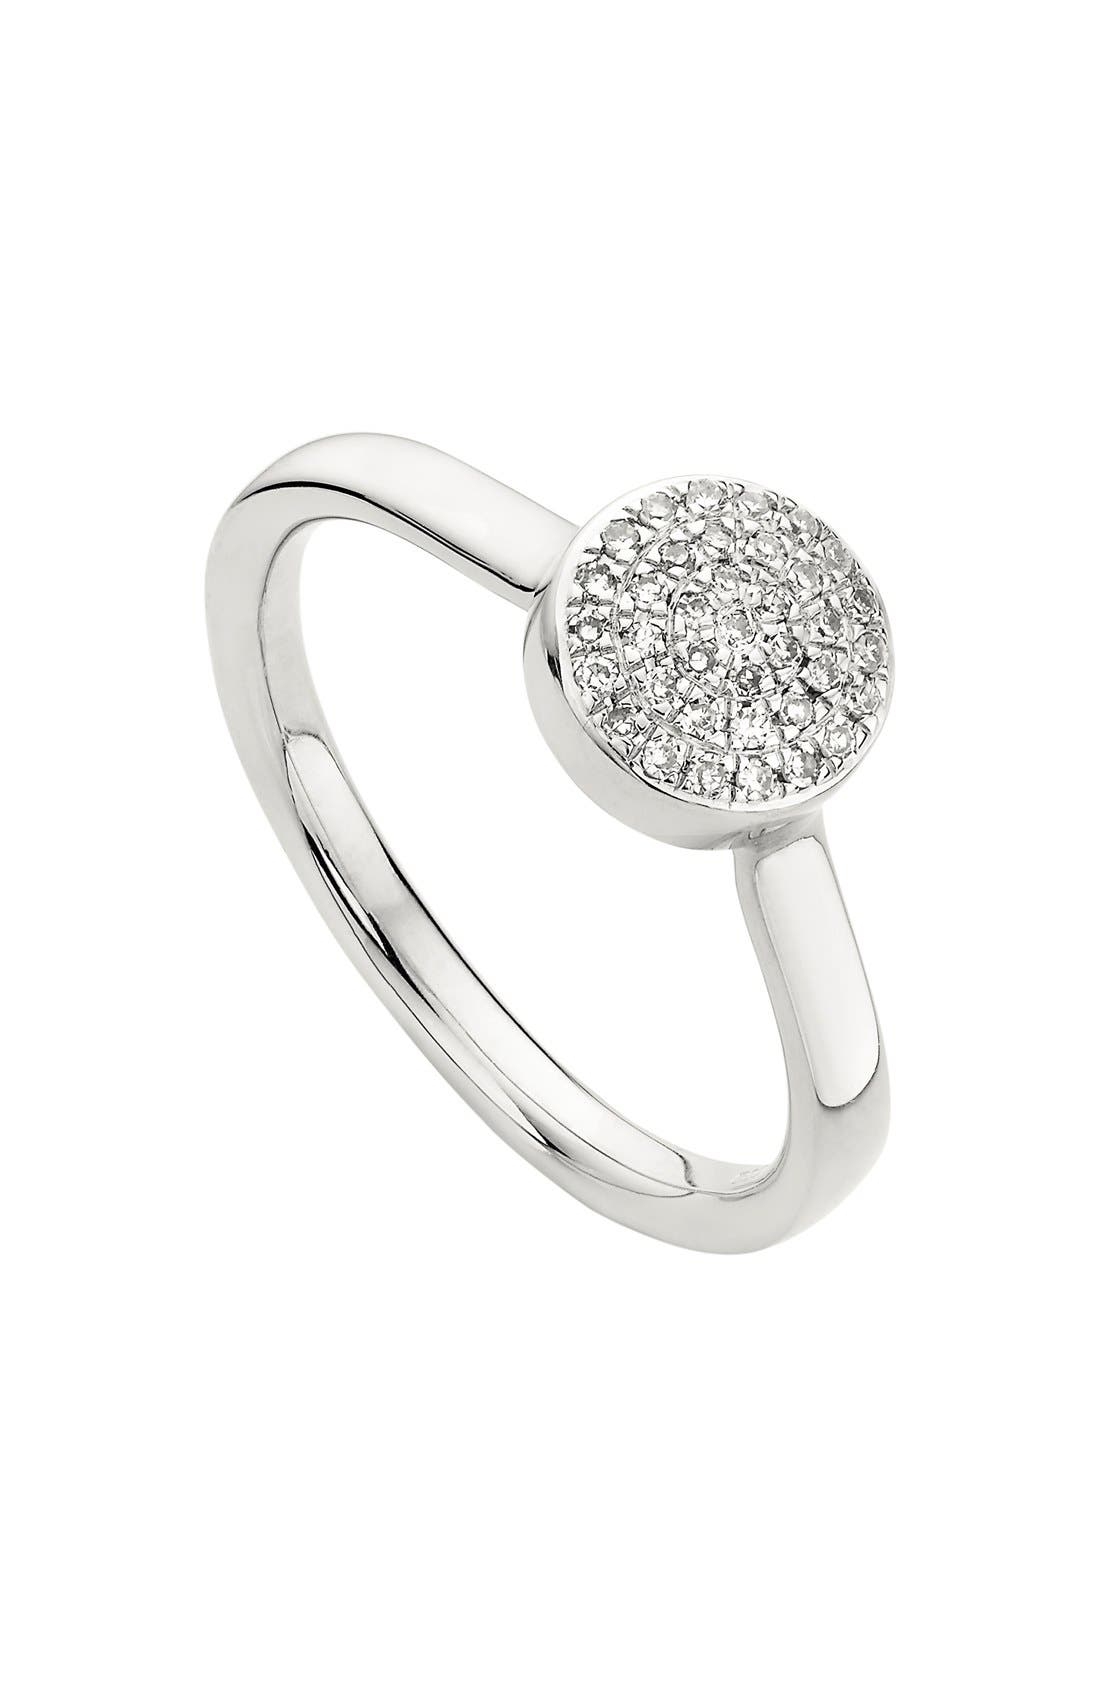 'Ava' Diamond Button Ring,                             Main thumbnail 1, color,                             SILVER